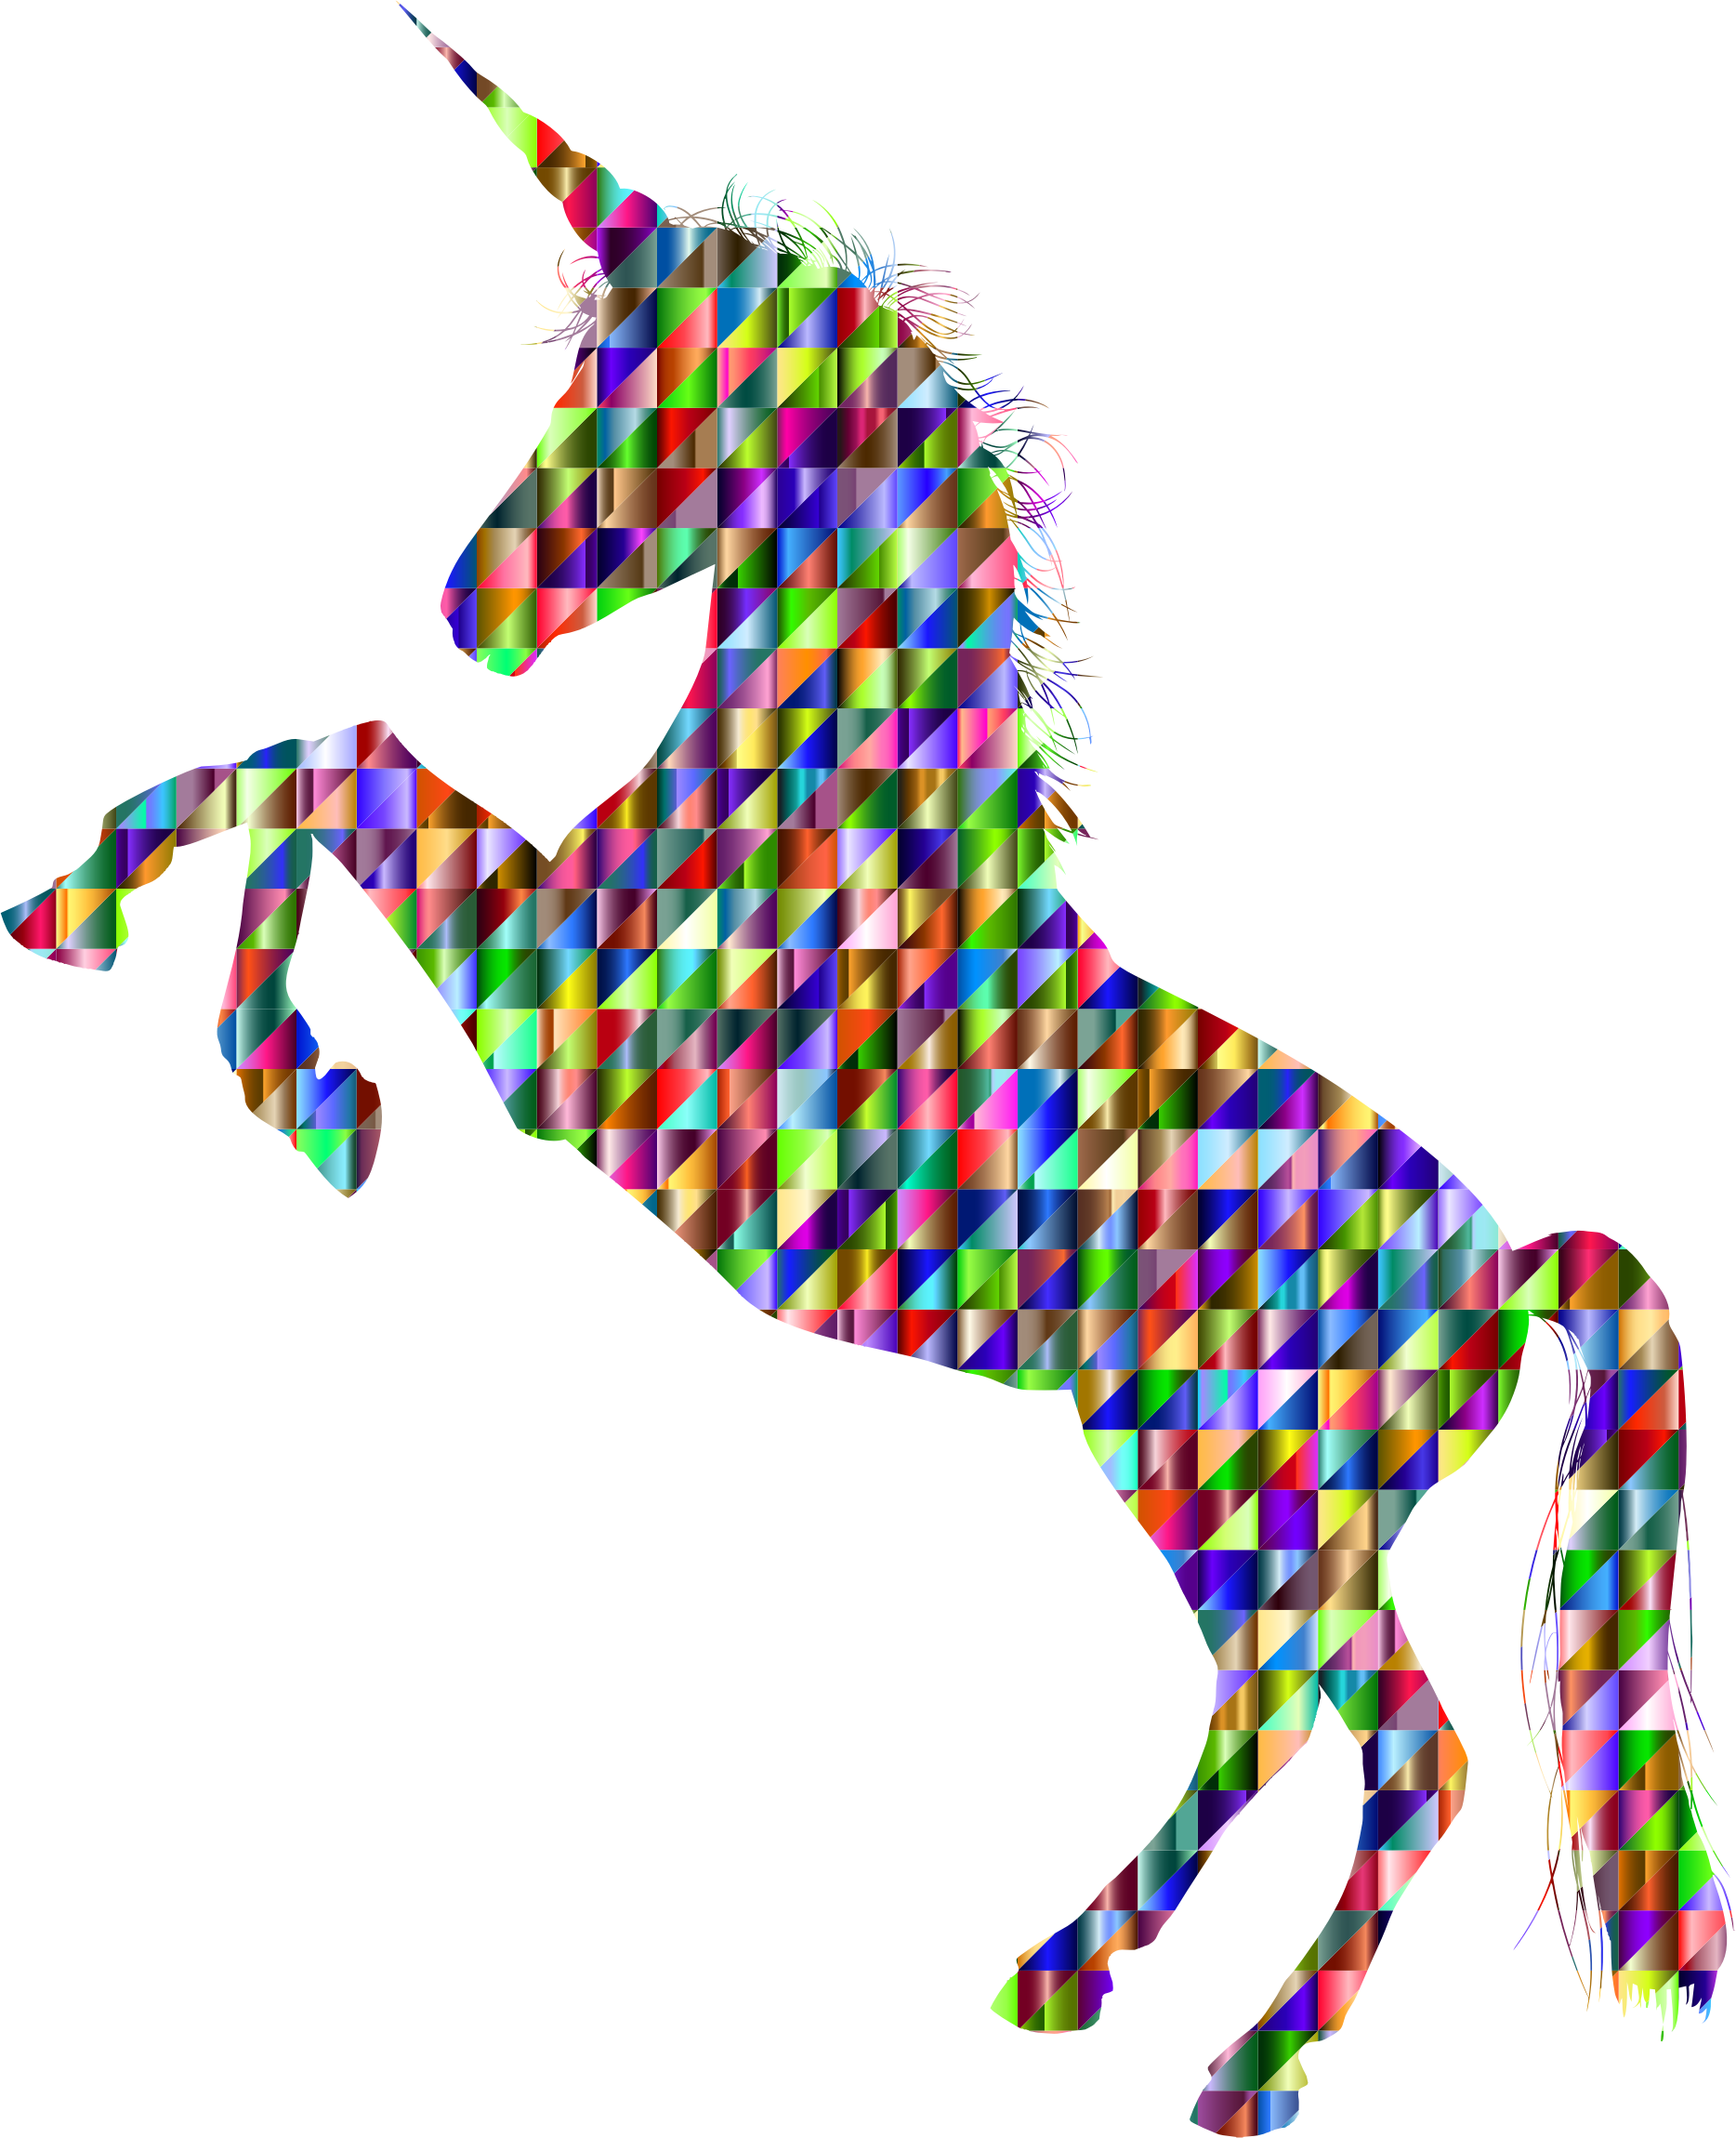 Chromatic Triangular Unicorn Silhouette by GDJ